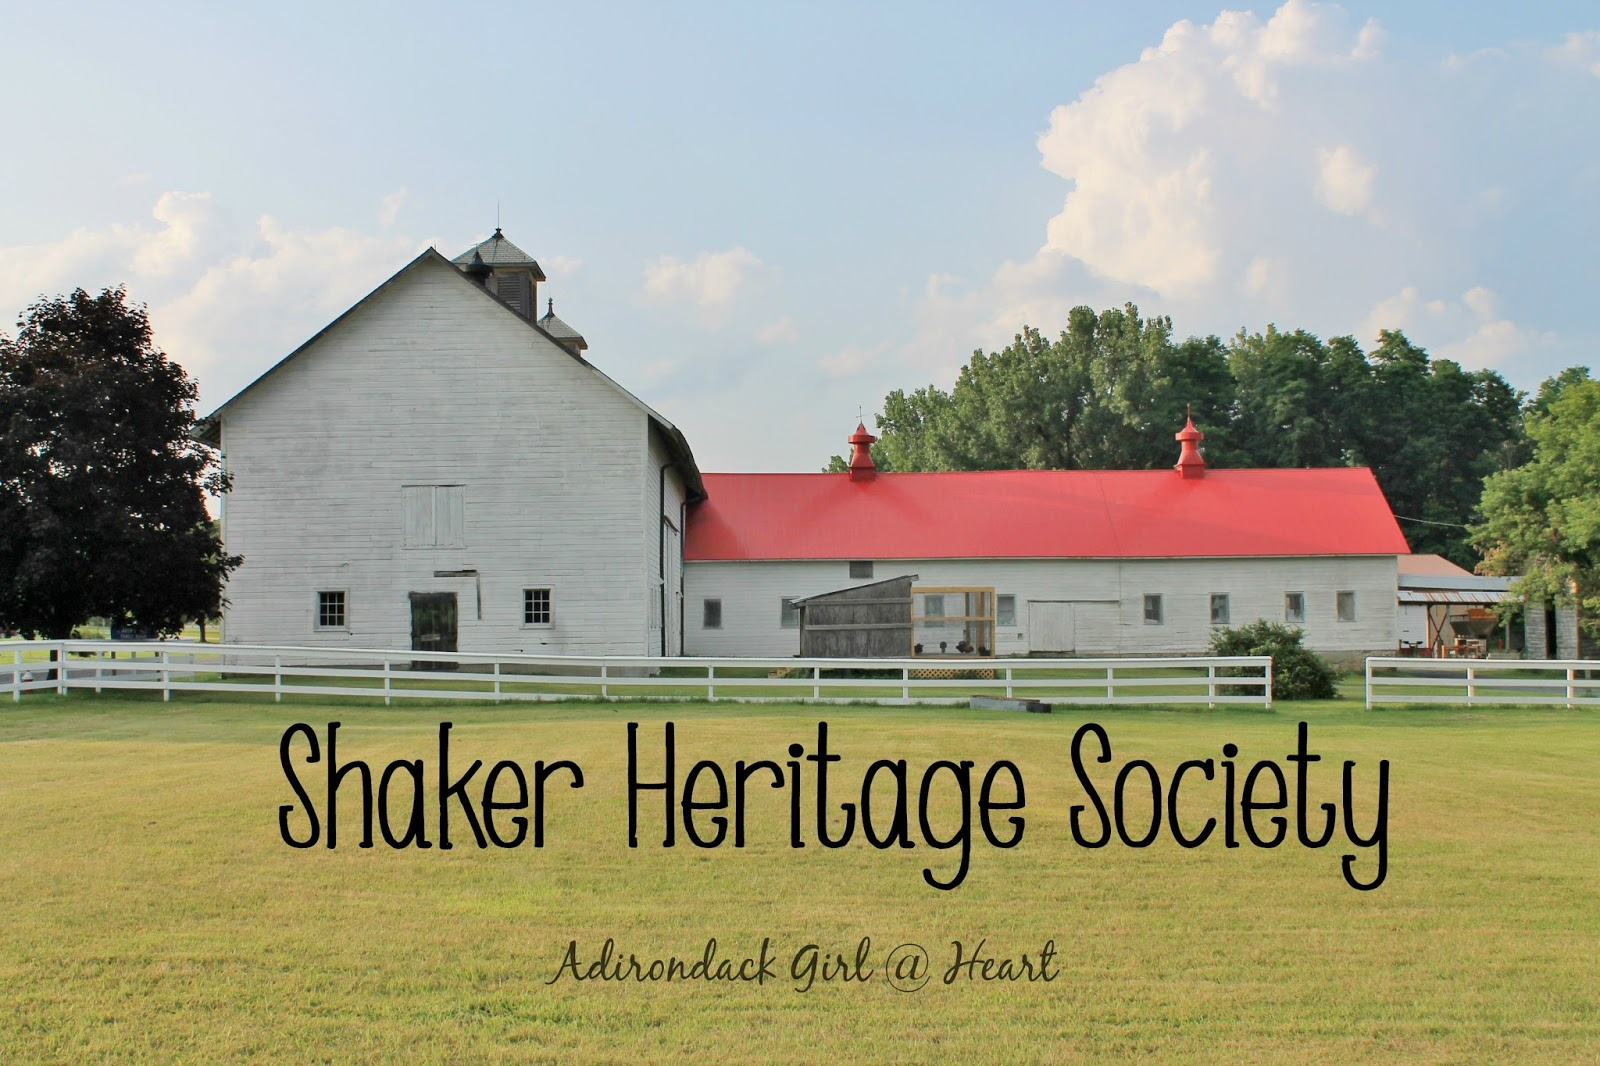 The Shaker Heritage Society